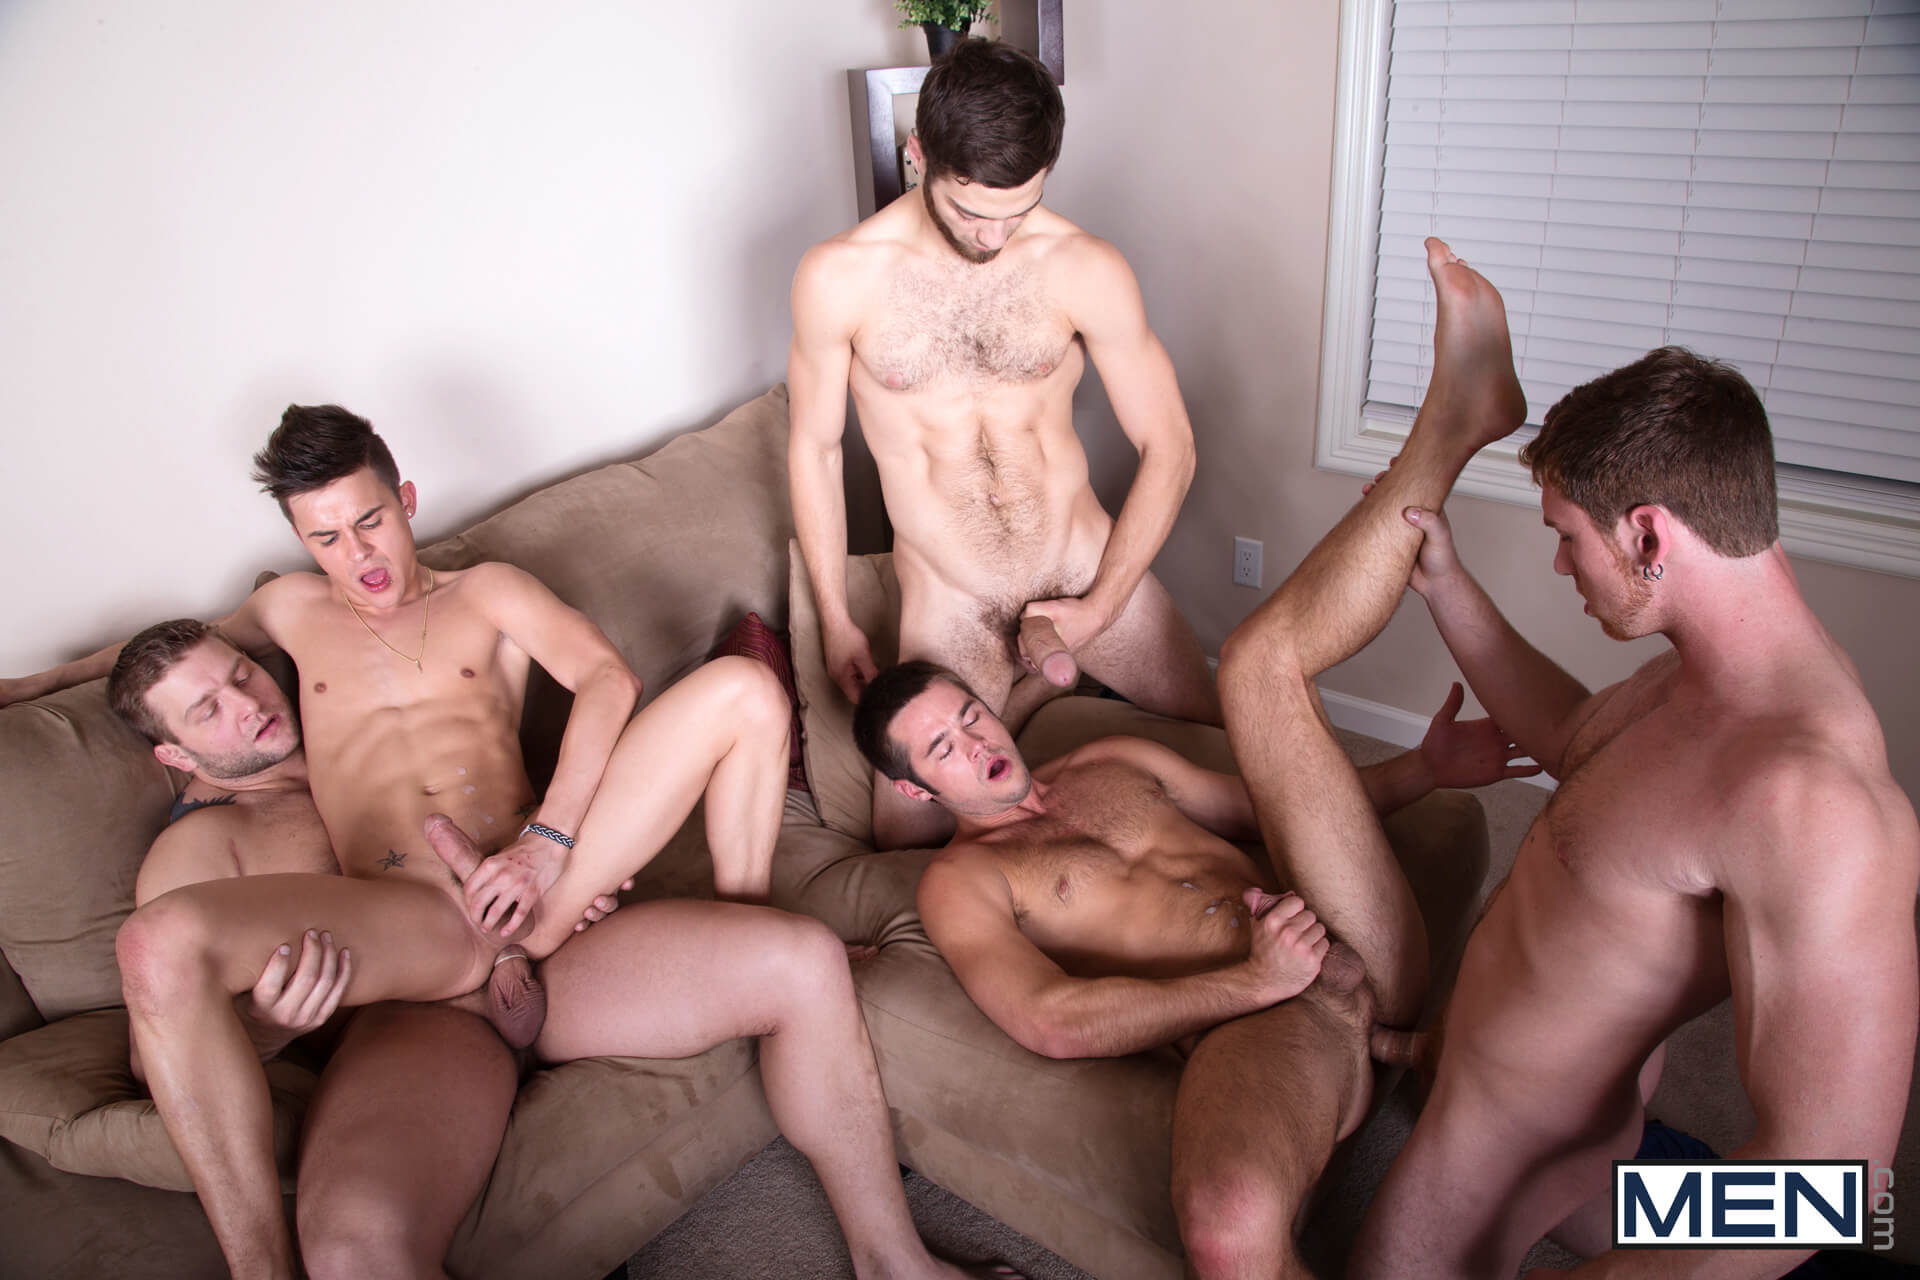 MEN.COM » Jizz Orgy » Intervention » Andy Taylor » Colby Jansen » Connor Maguire » Mike De Marko » Tommy Defendi